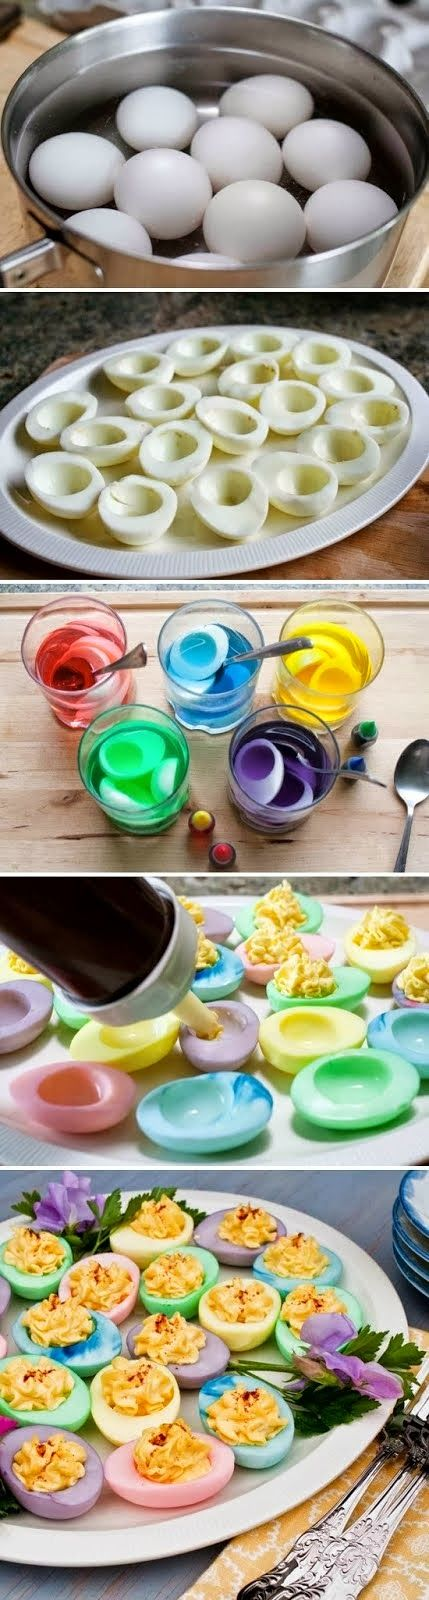 How To Make Colorful #Easter Eggs